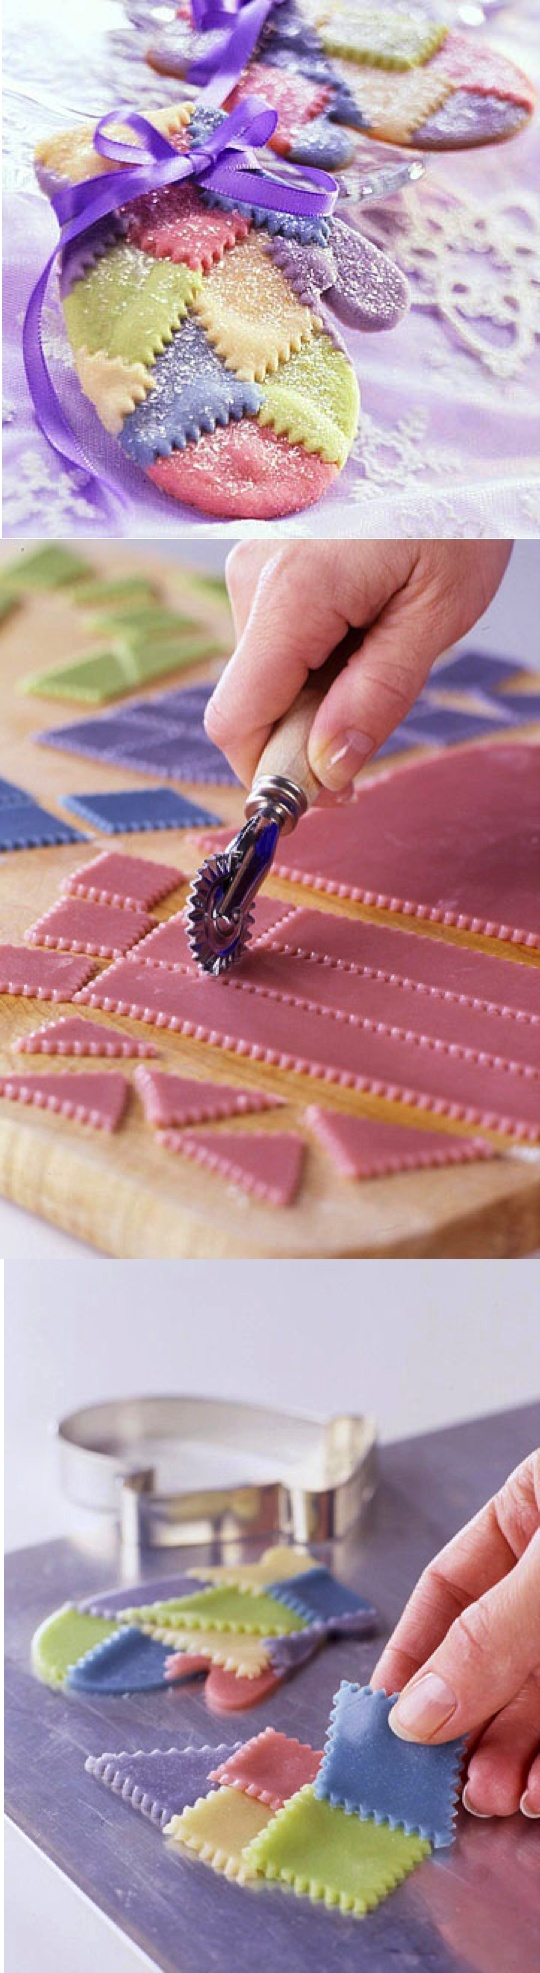 Quilted Mitten Cookies...This would also make a great craft using salt dough and some coloring: